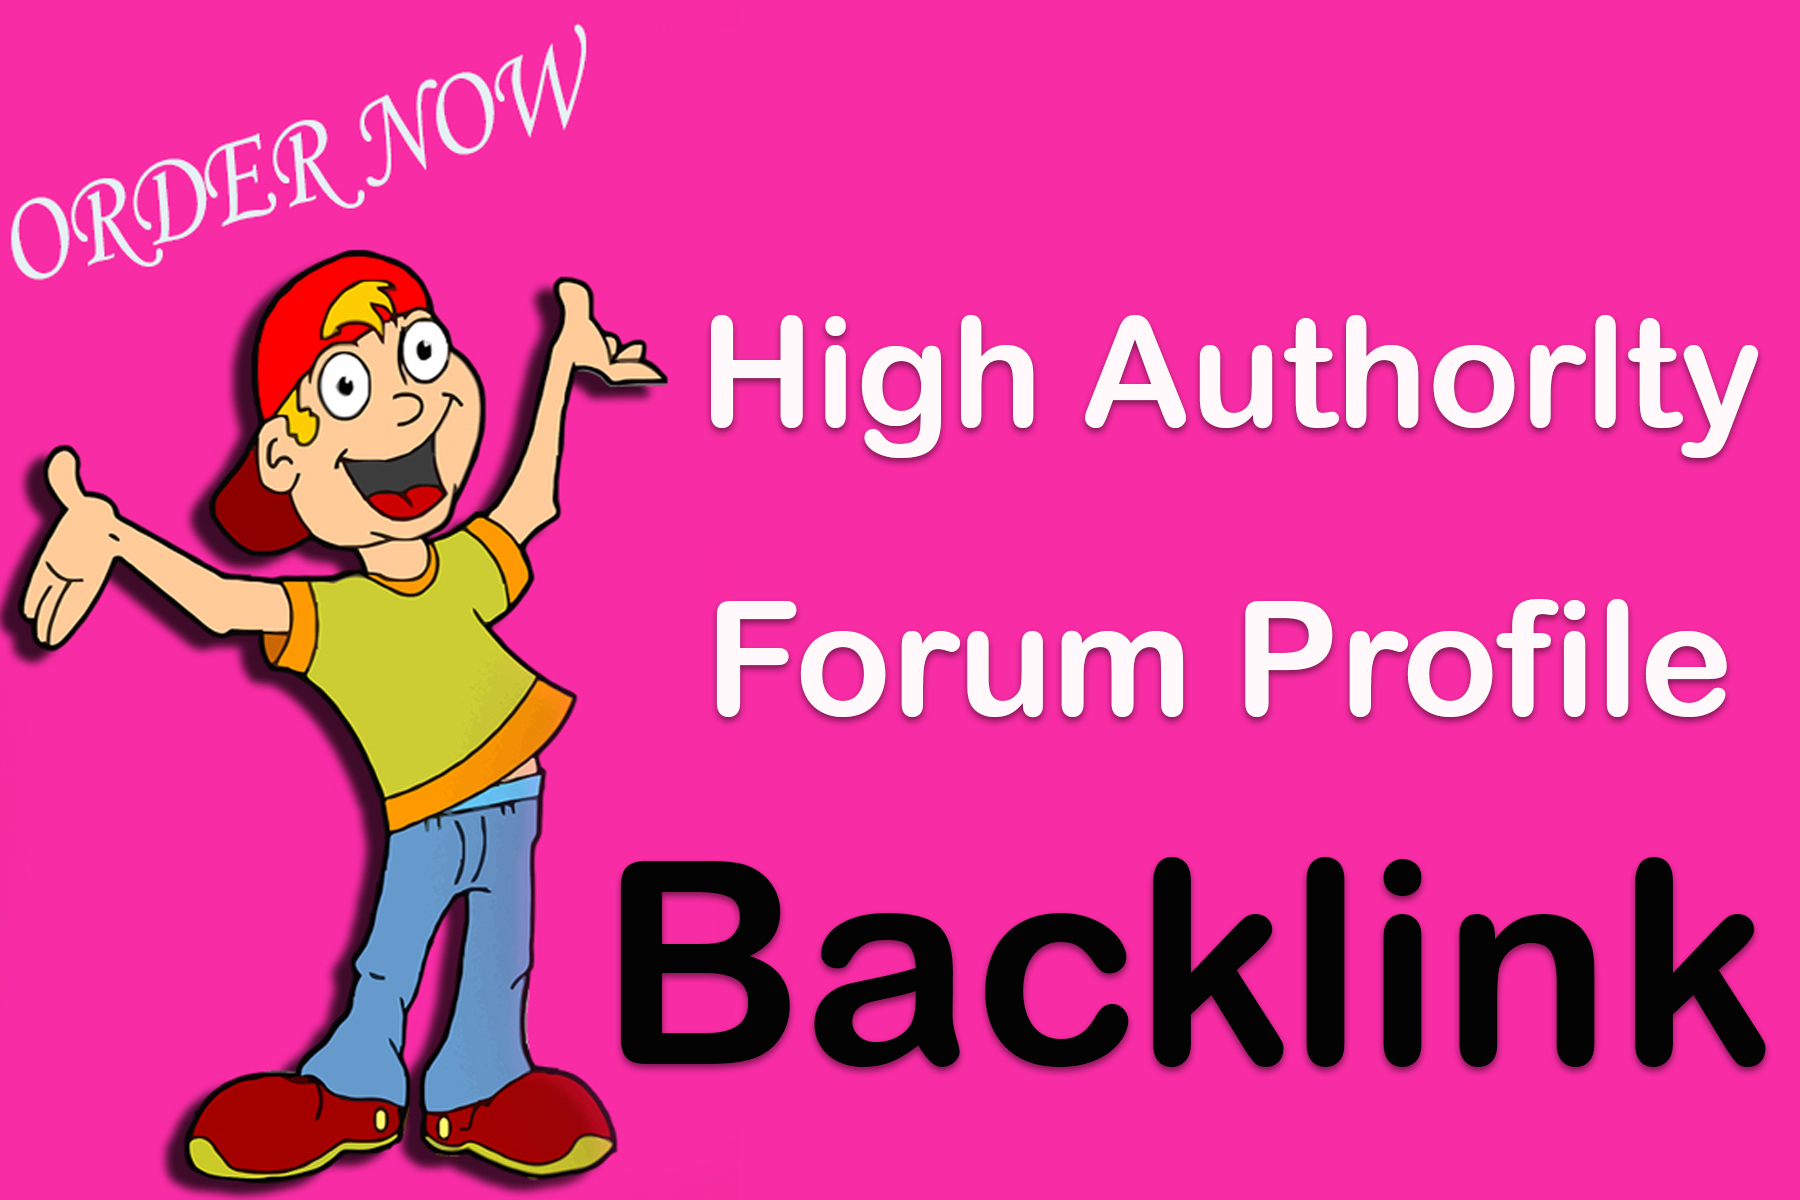 Create 2000+ forums Profile SEO high authority backlinks for Google ranking